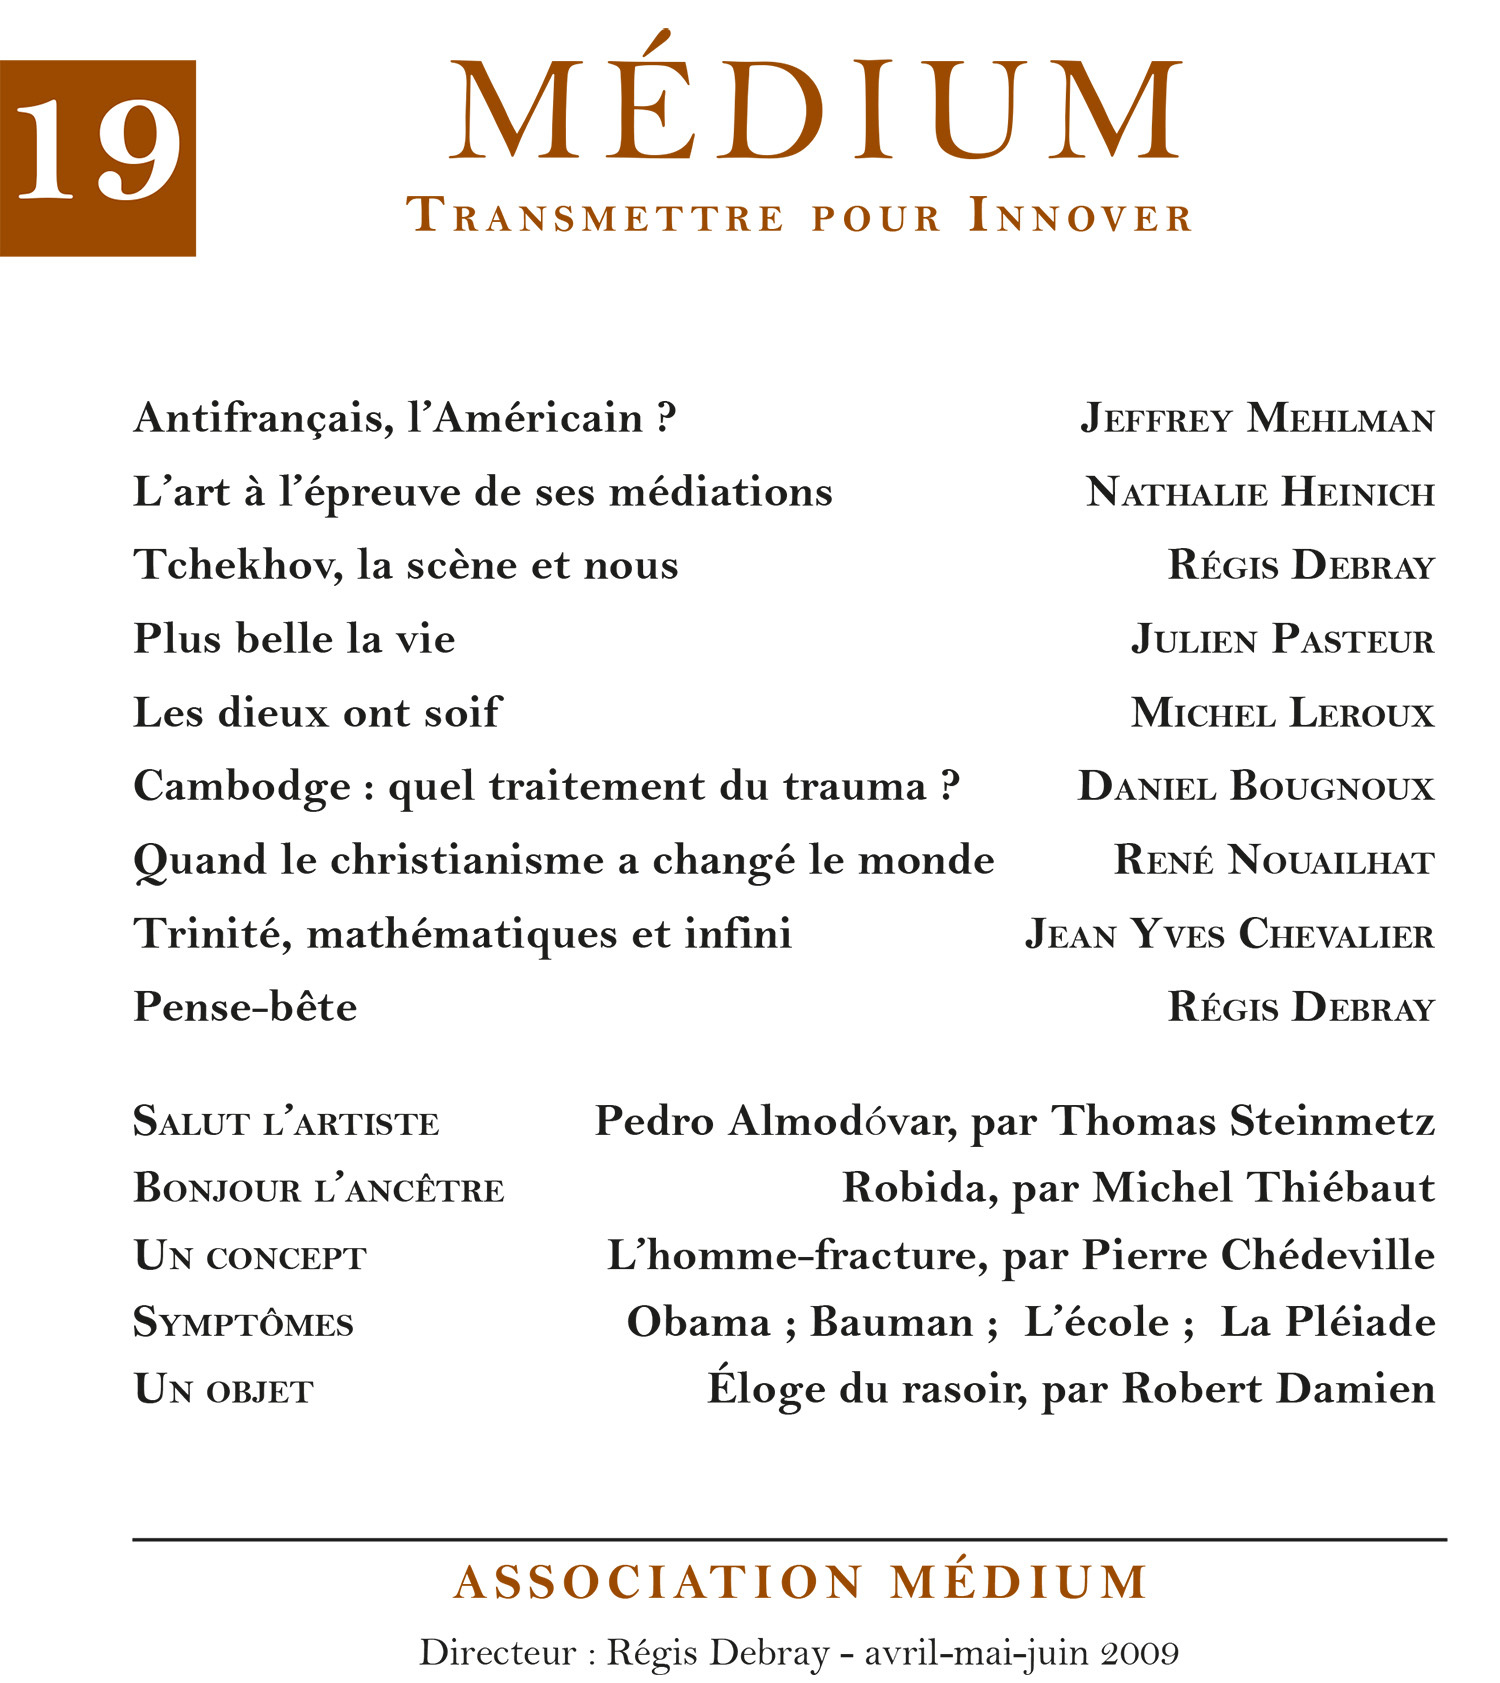 Médium n°19, avril-juin 2009